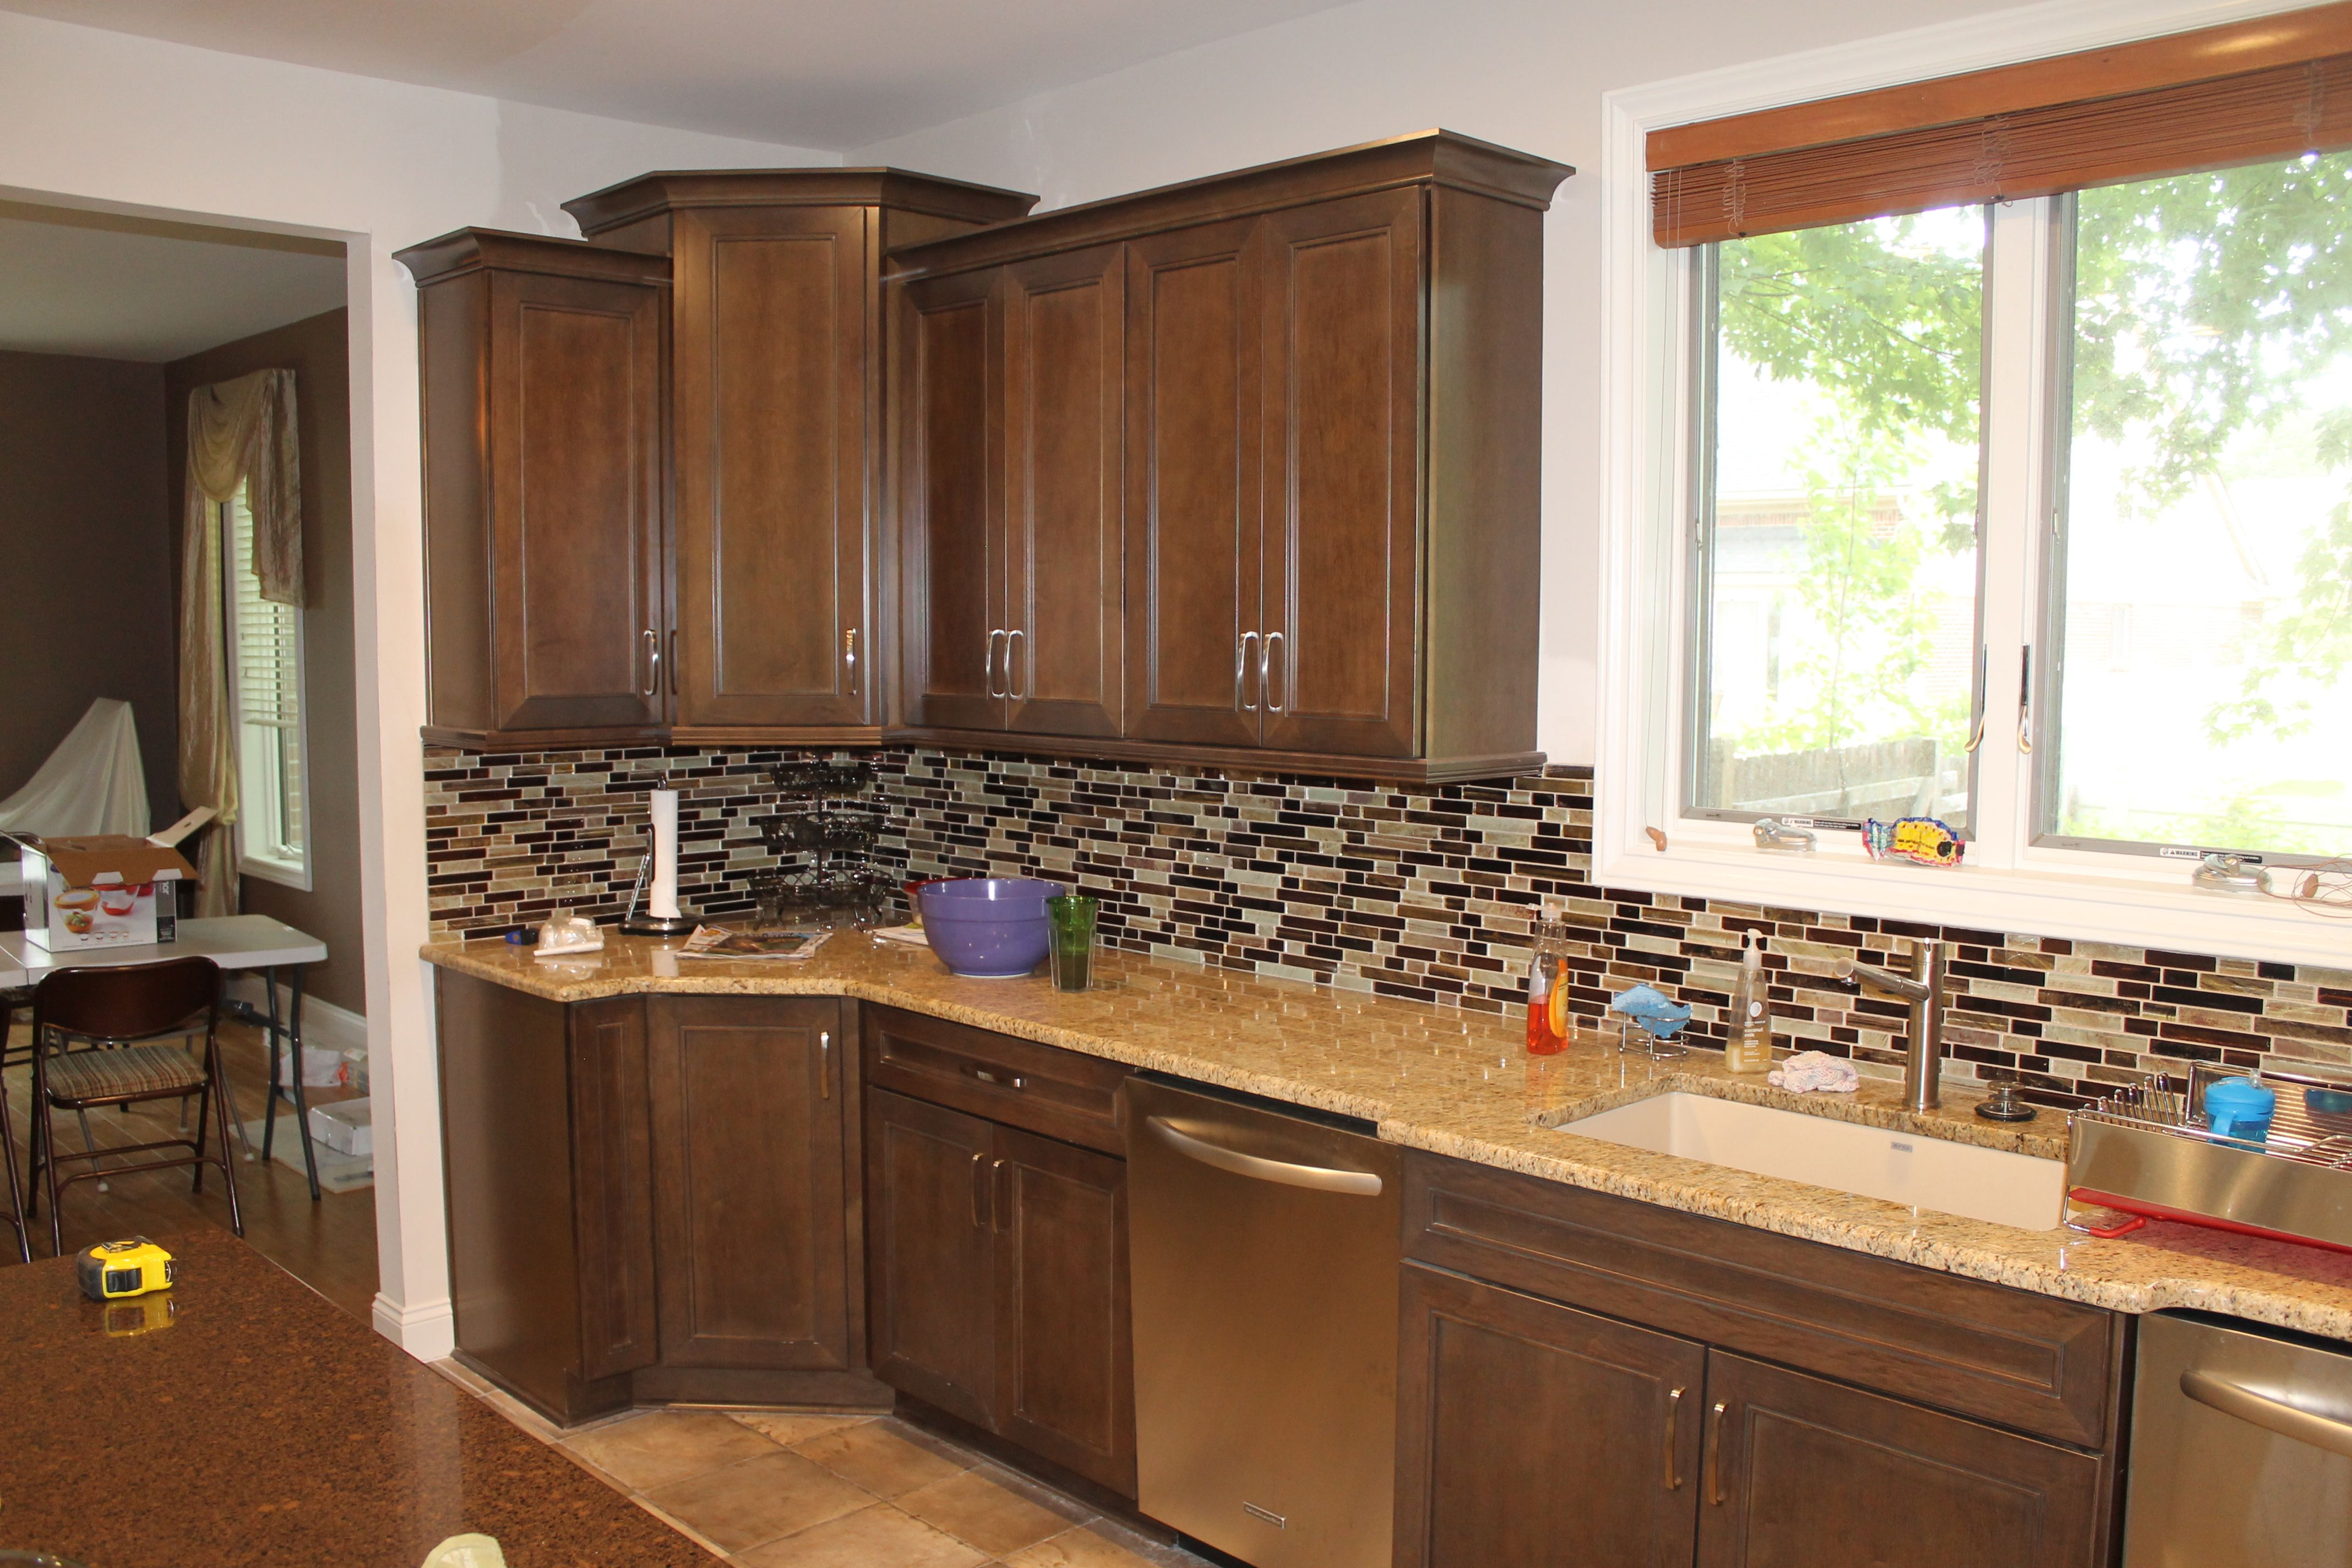 Medium Maple Cabinets with light Granite countertops and ... on Backsplash For Maple Cabinets And Black Granite  id=31955